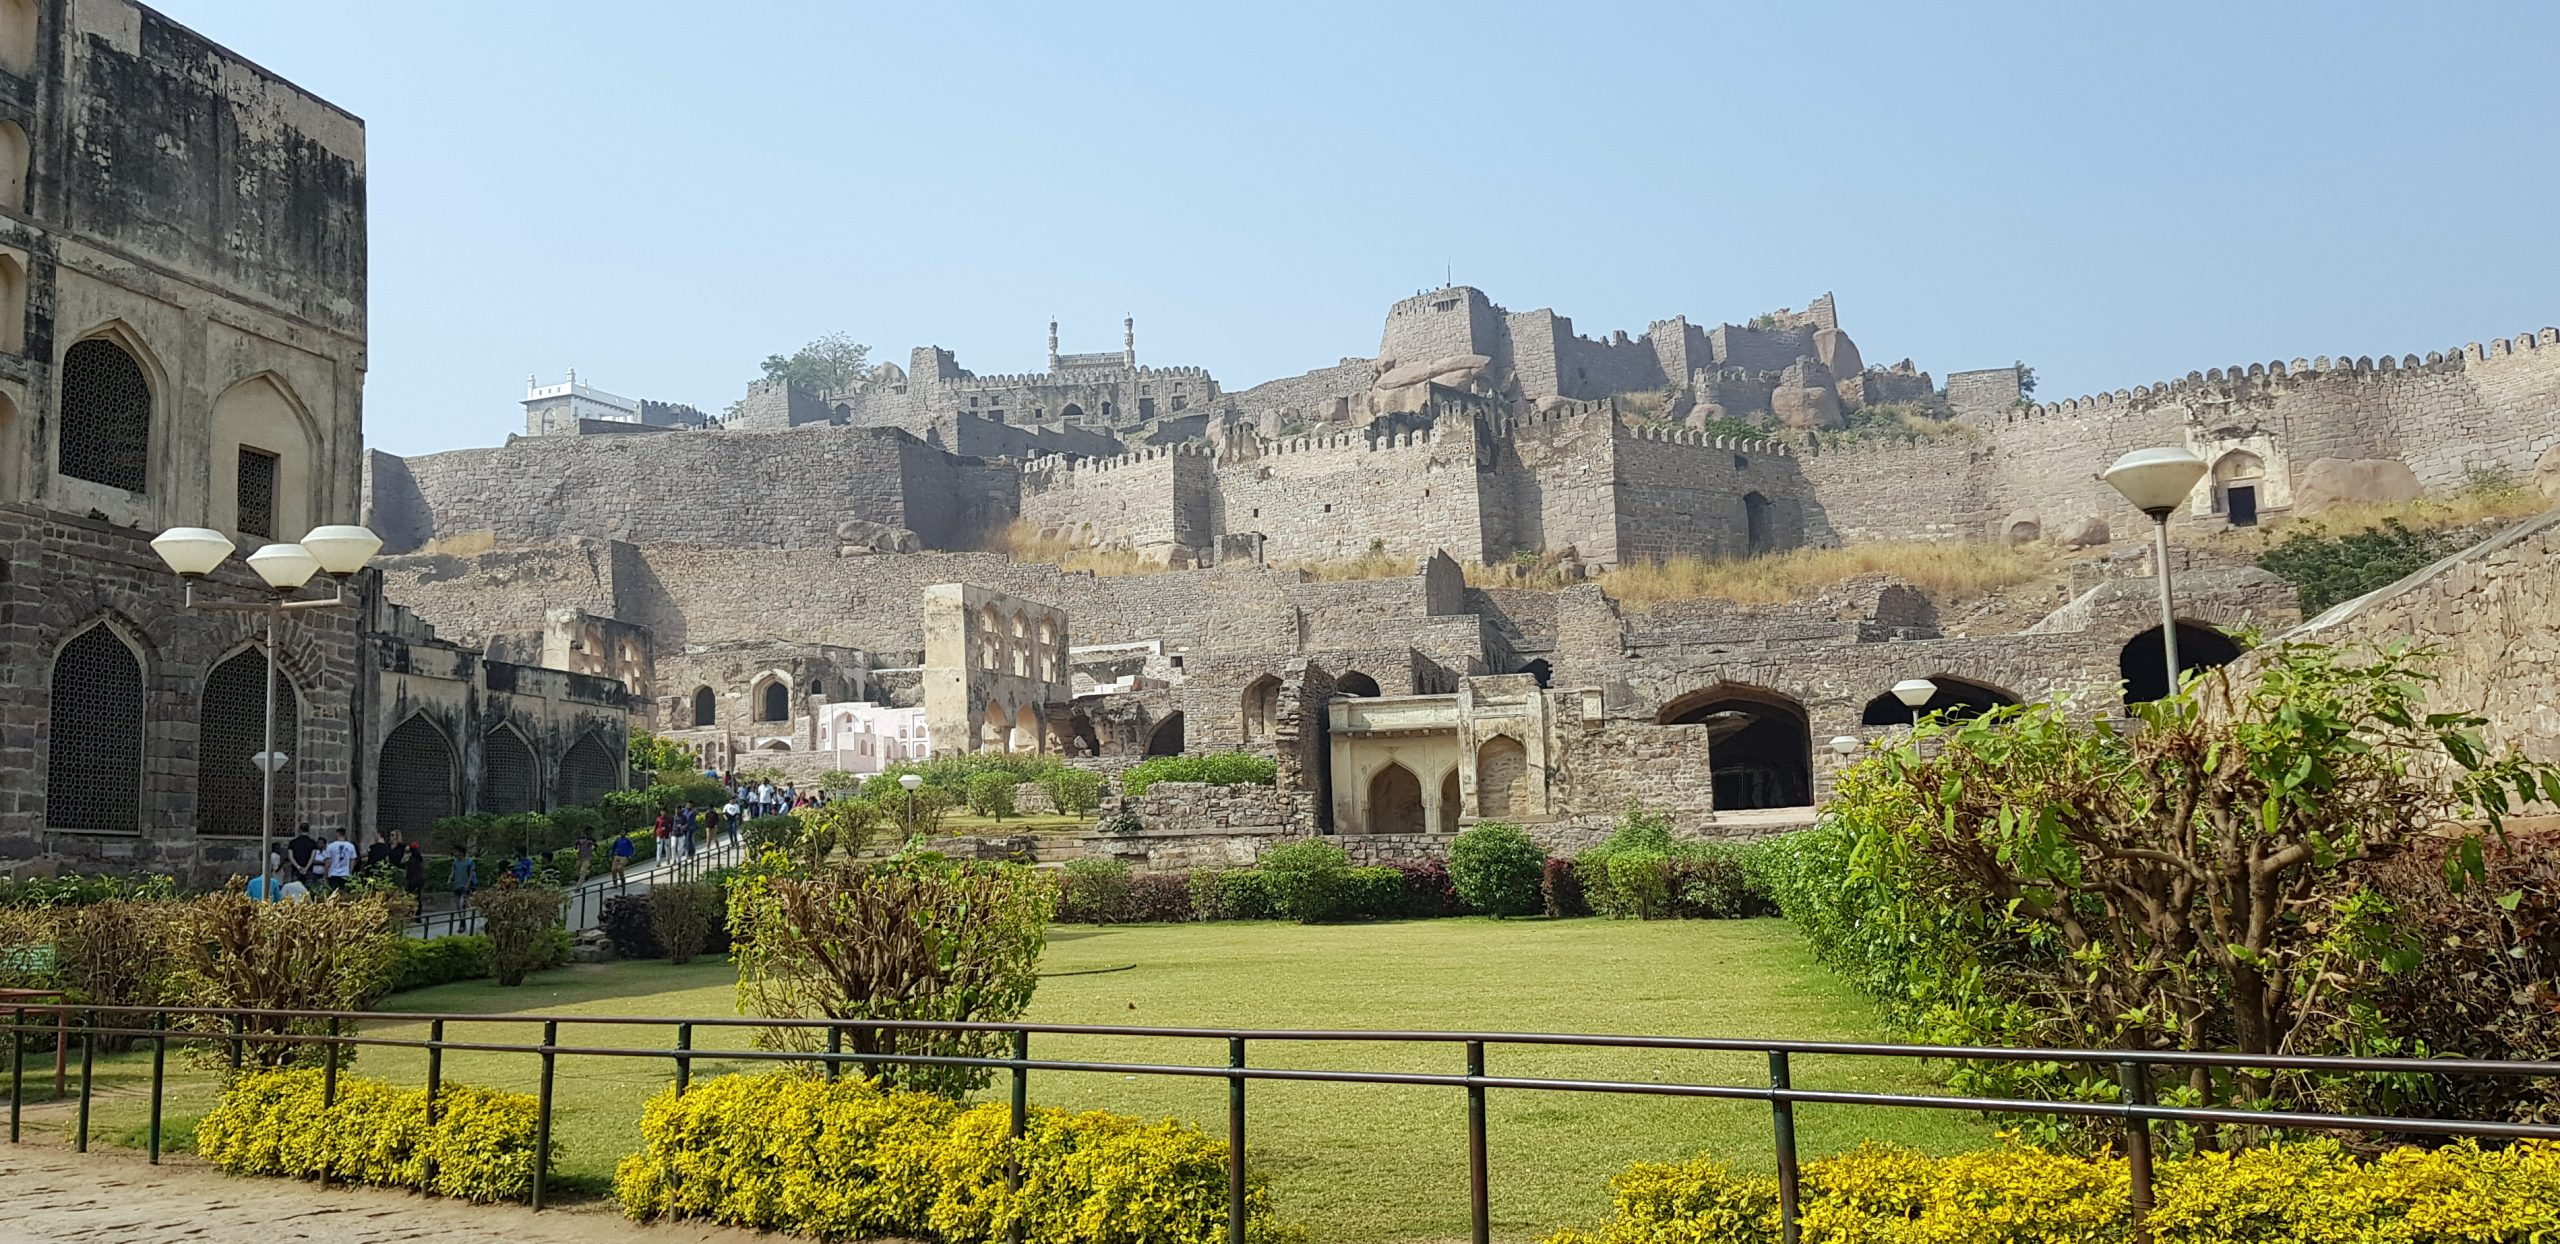 Golconda Fort - Famous Place To Visit Near Paigah Tombs